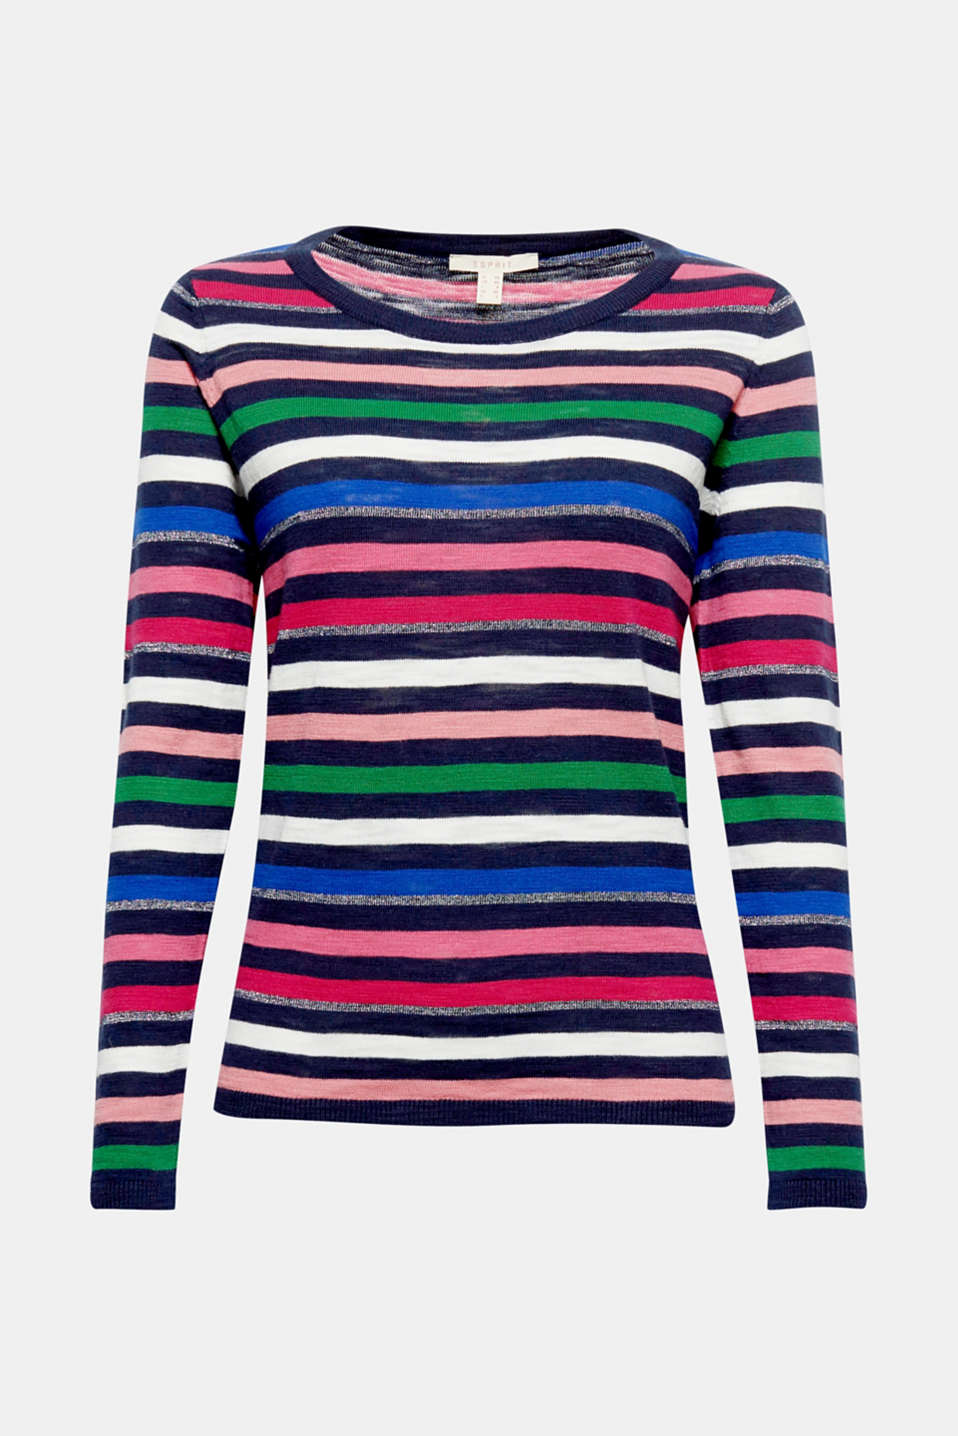 How about a touch of glitter? Great intarsia? And a lightweight cotton knit? Sounds just like spring to us!